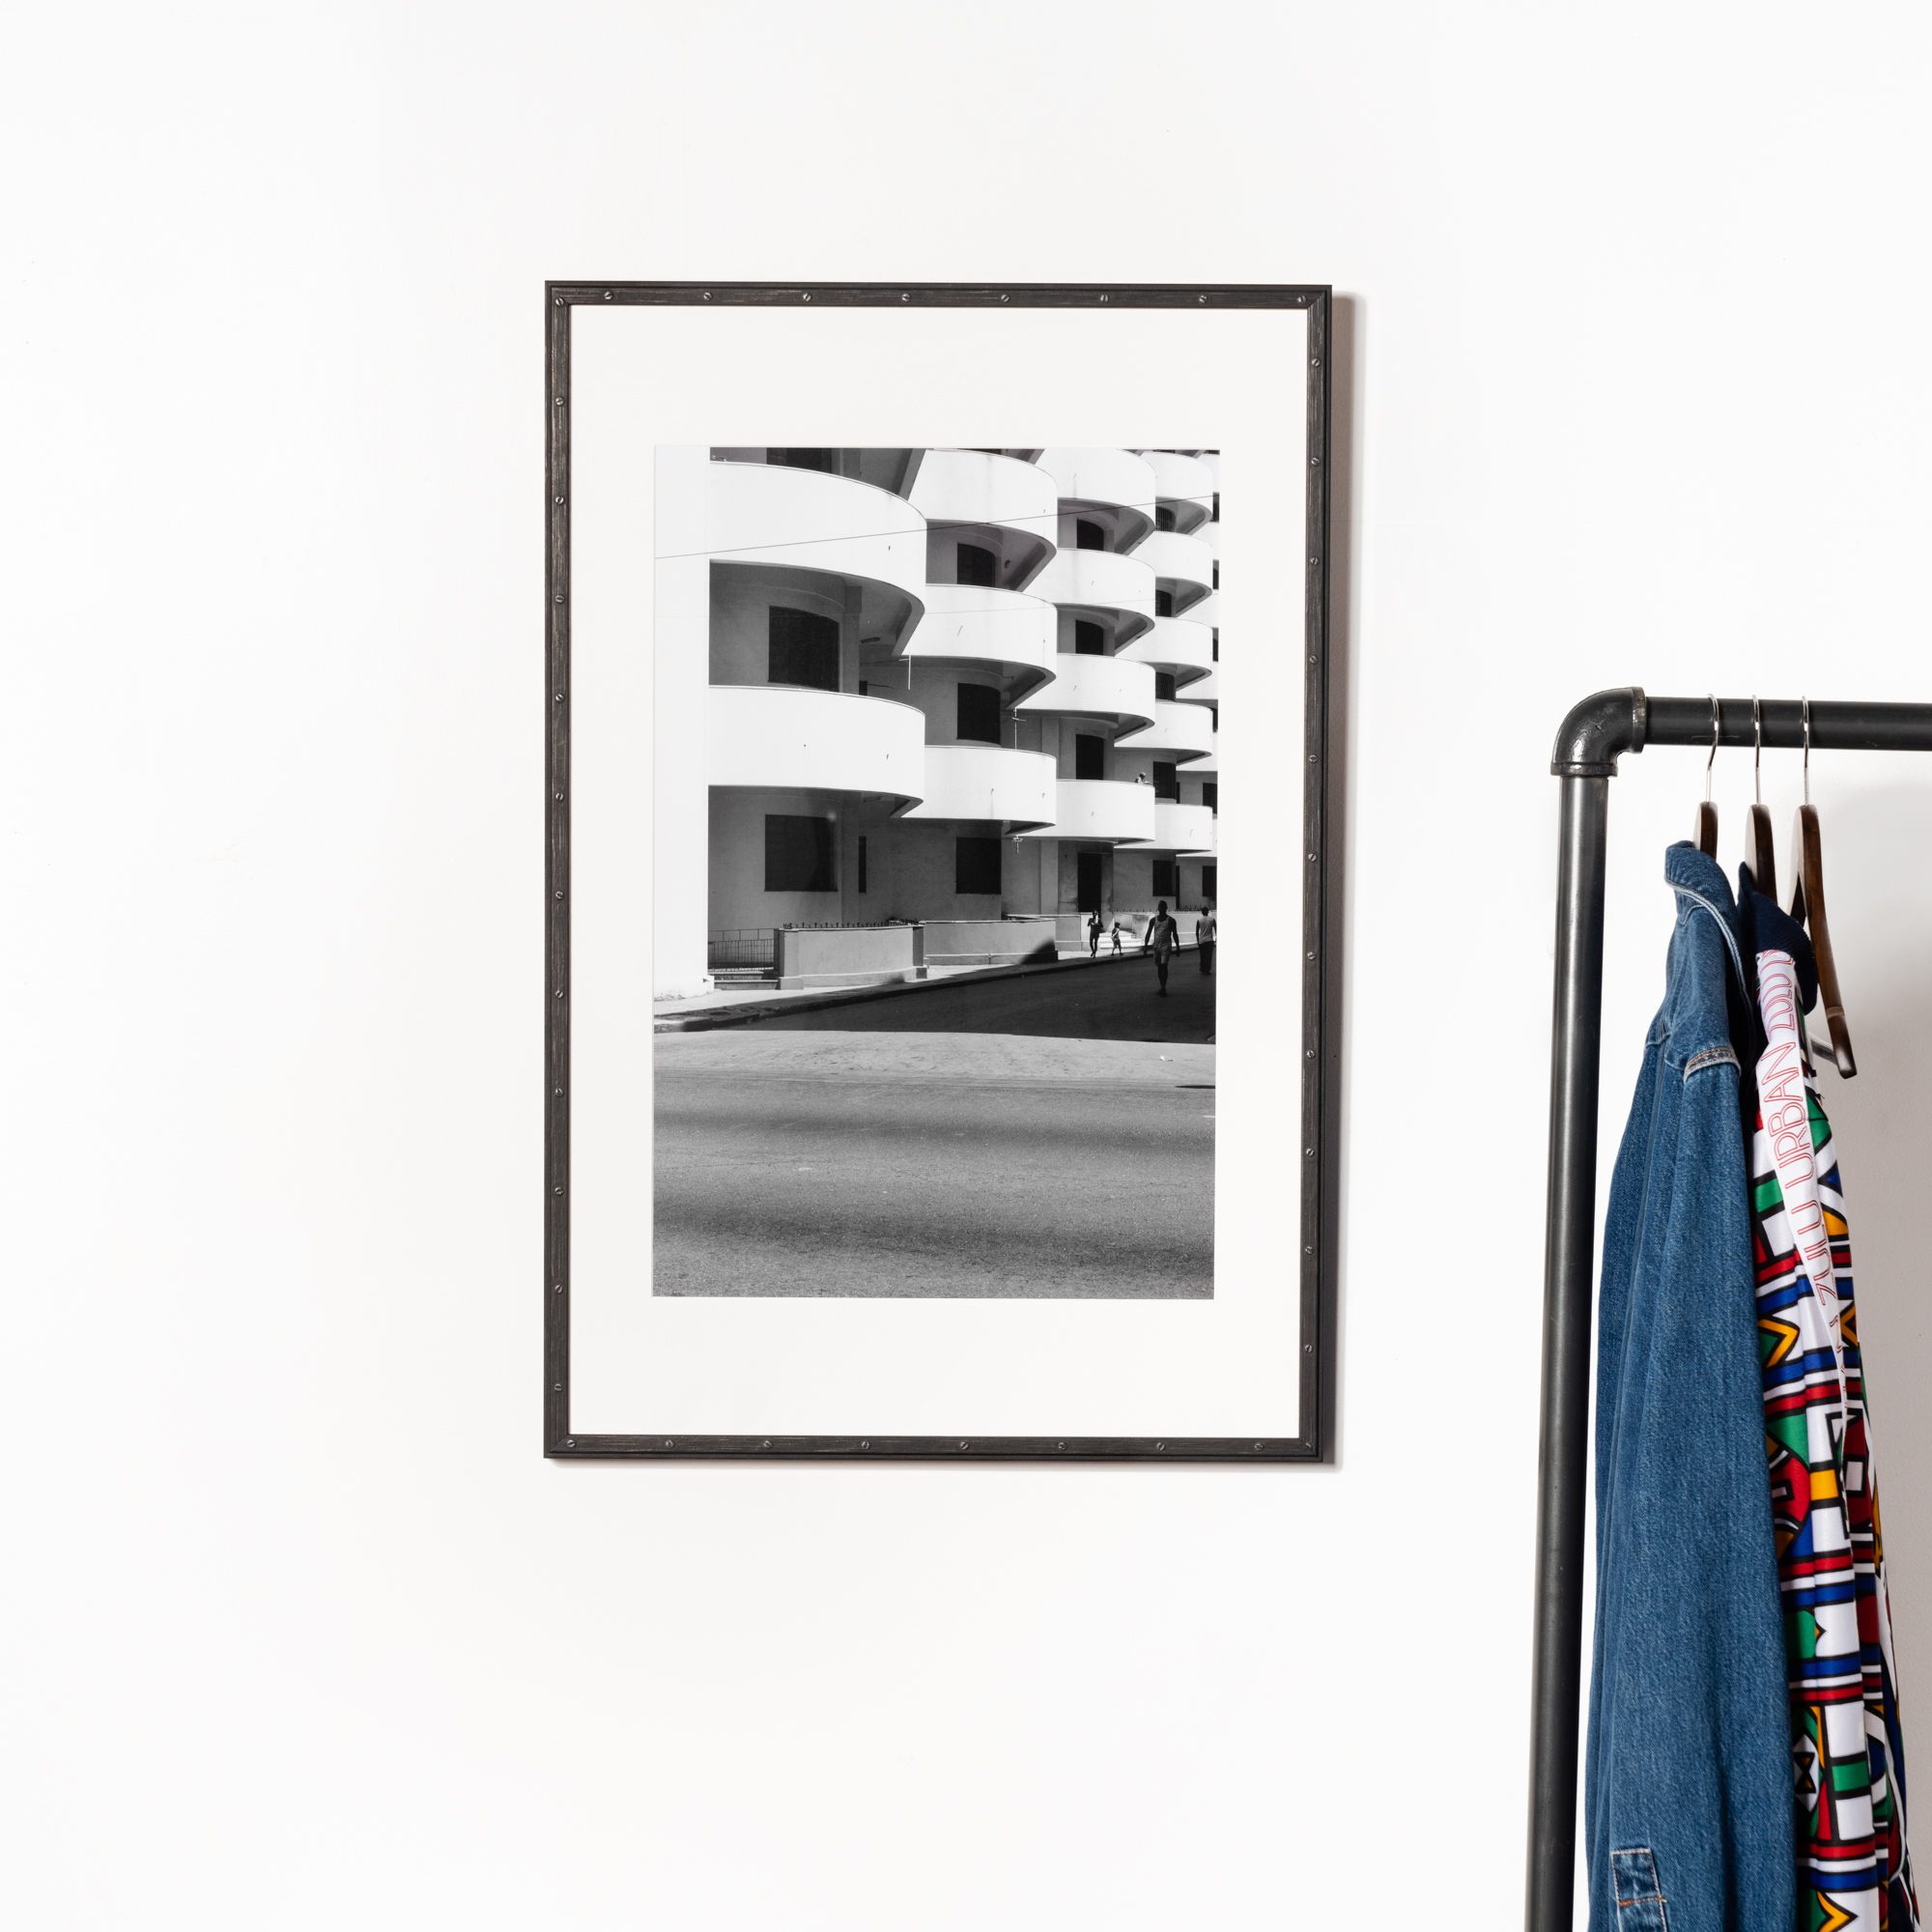 photo of balconies in black and white in black frame